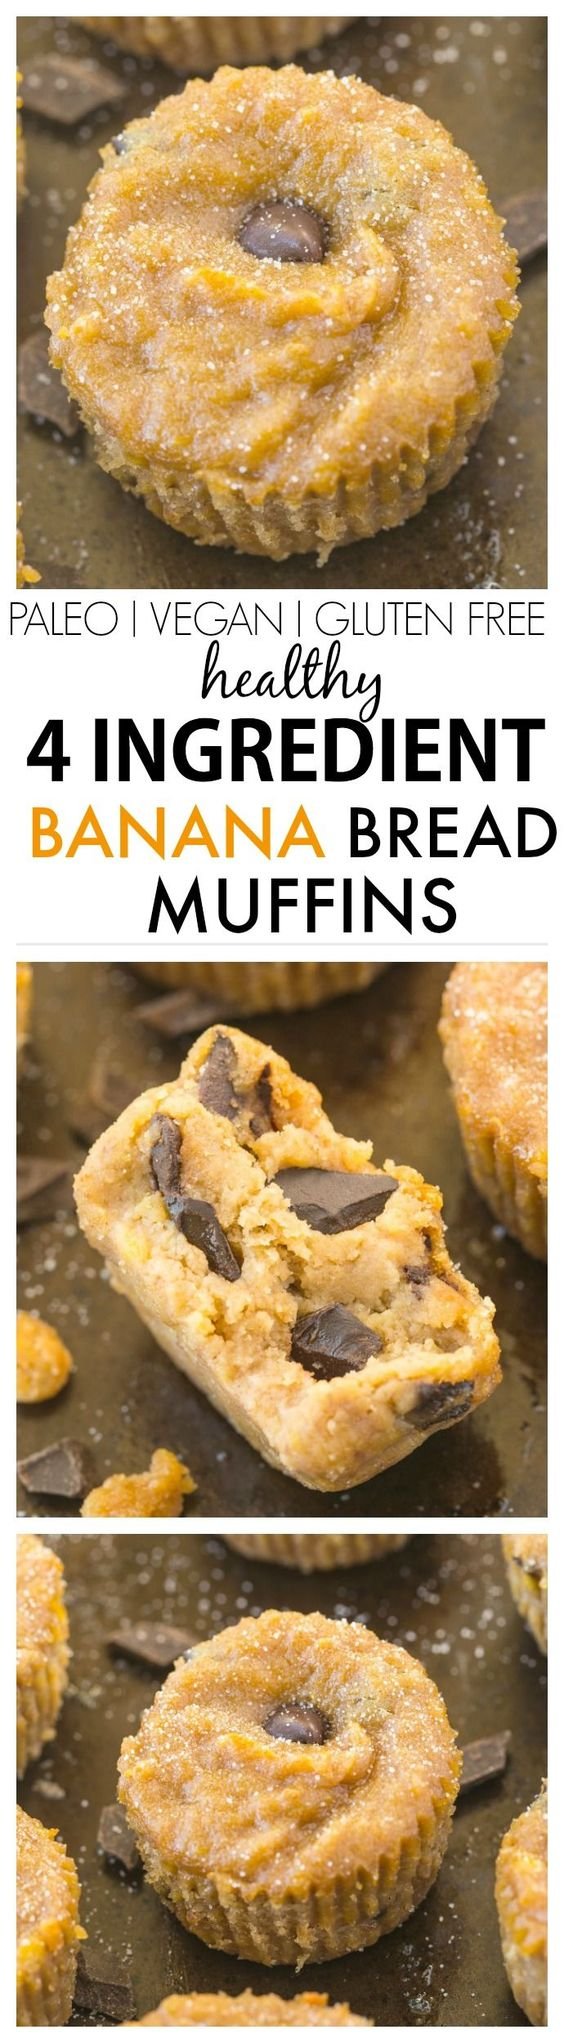 Banana bread banana bread muffins and 4 ingredients on pinterest